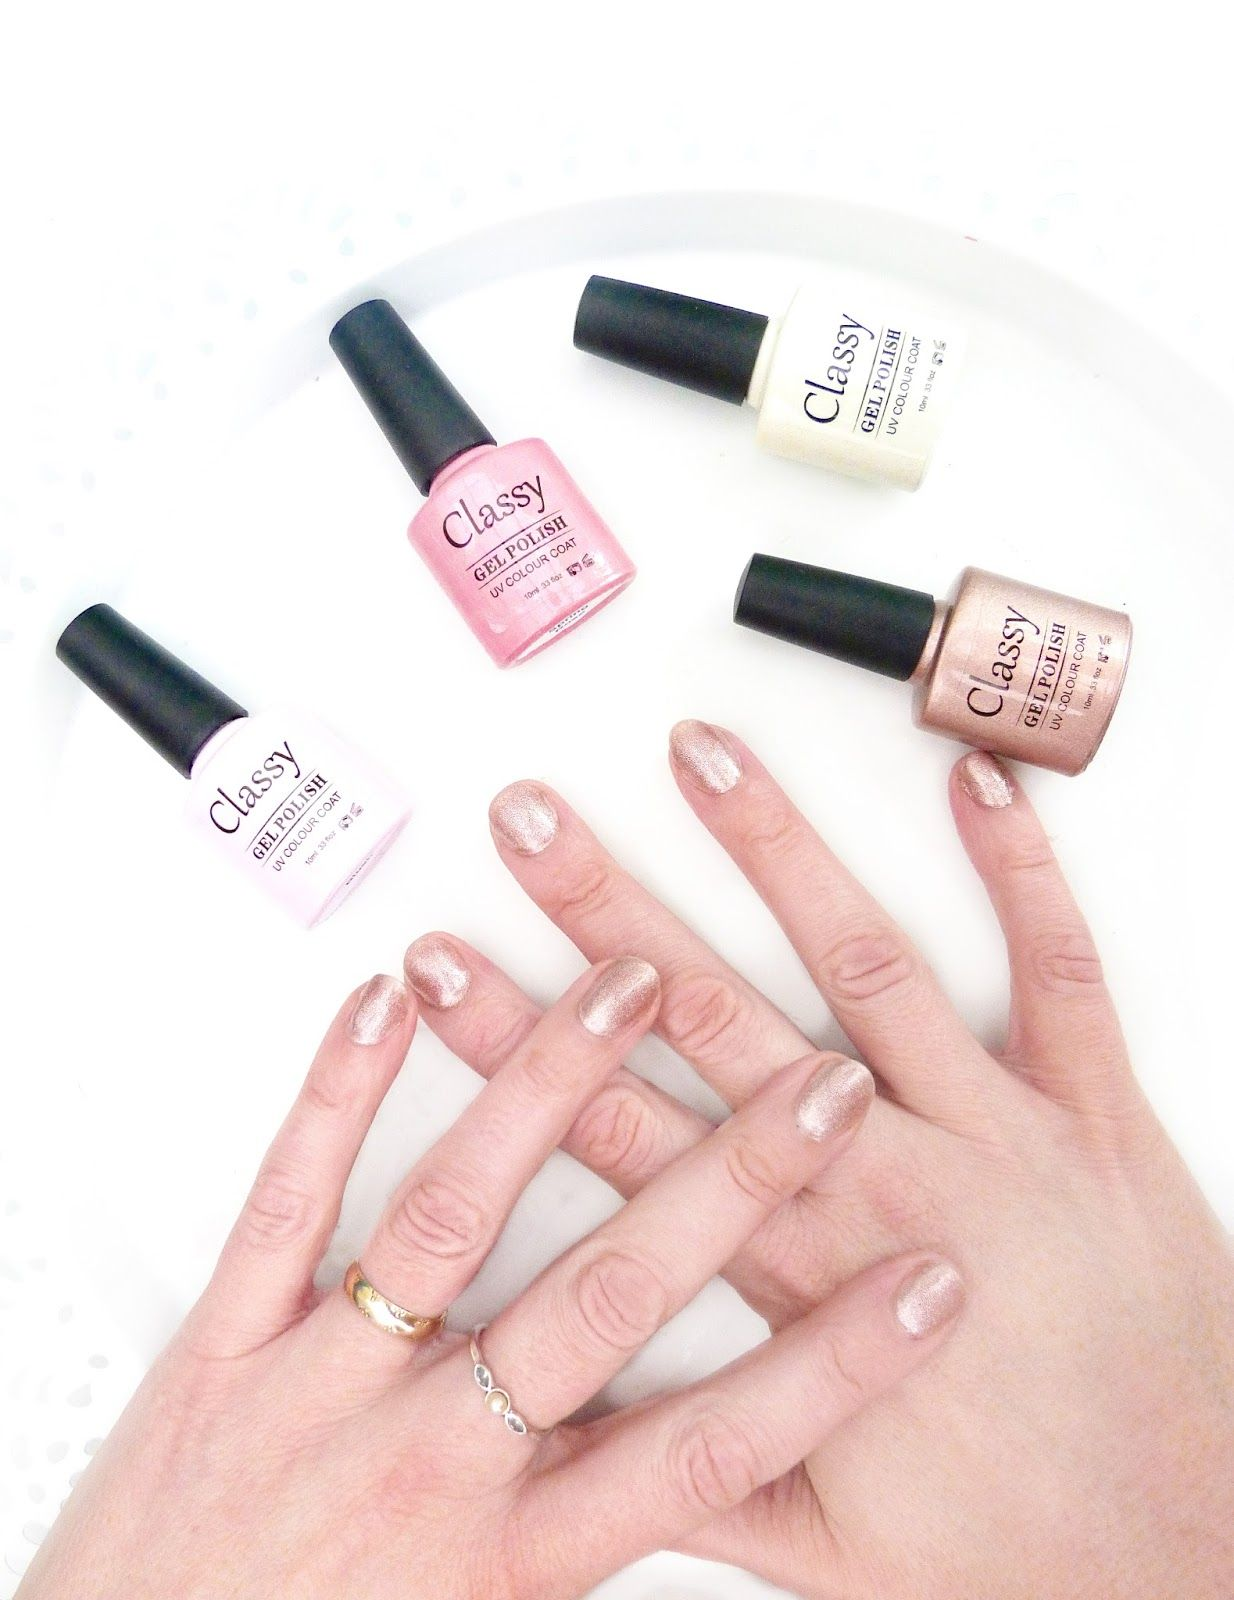 DIY manicures with the fabulous Classy Nails Starter Kit